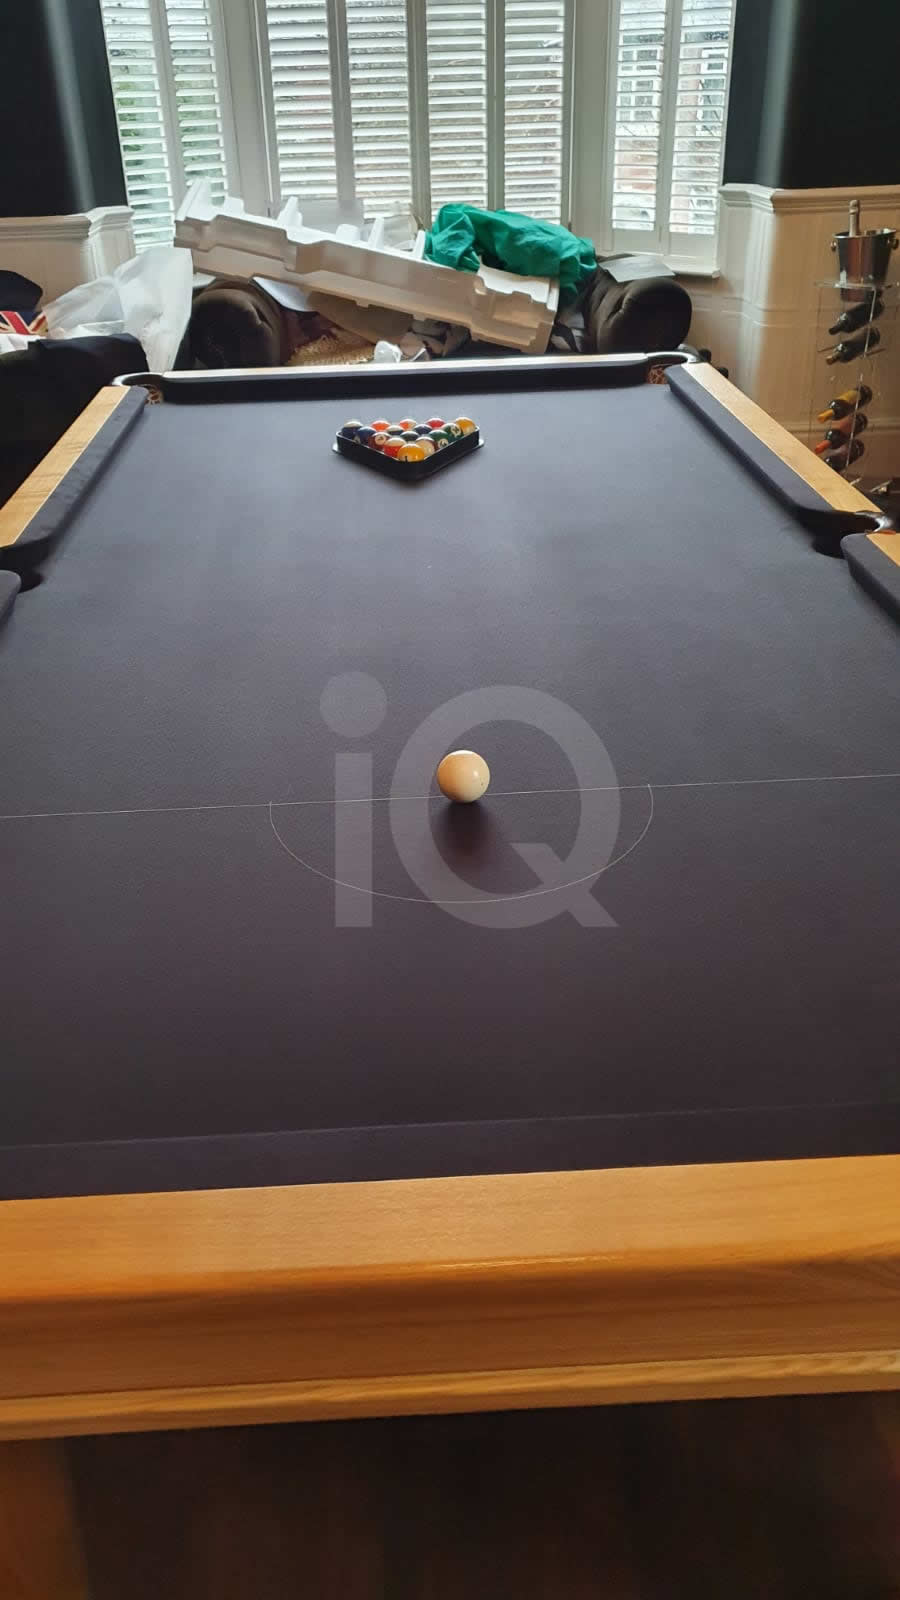 Recover of a 8ft Strachan 6811 Snooker Table with Black Cloth After Image 3